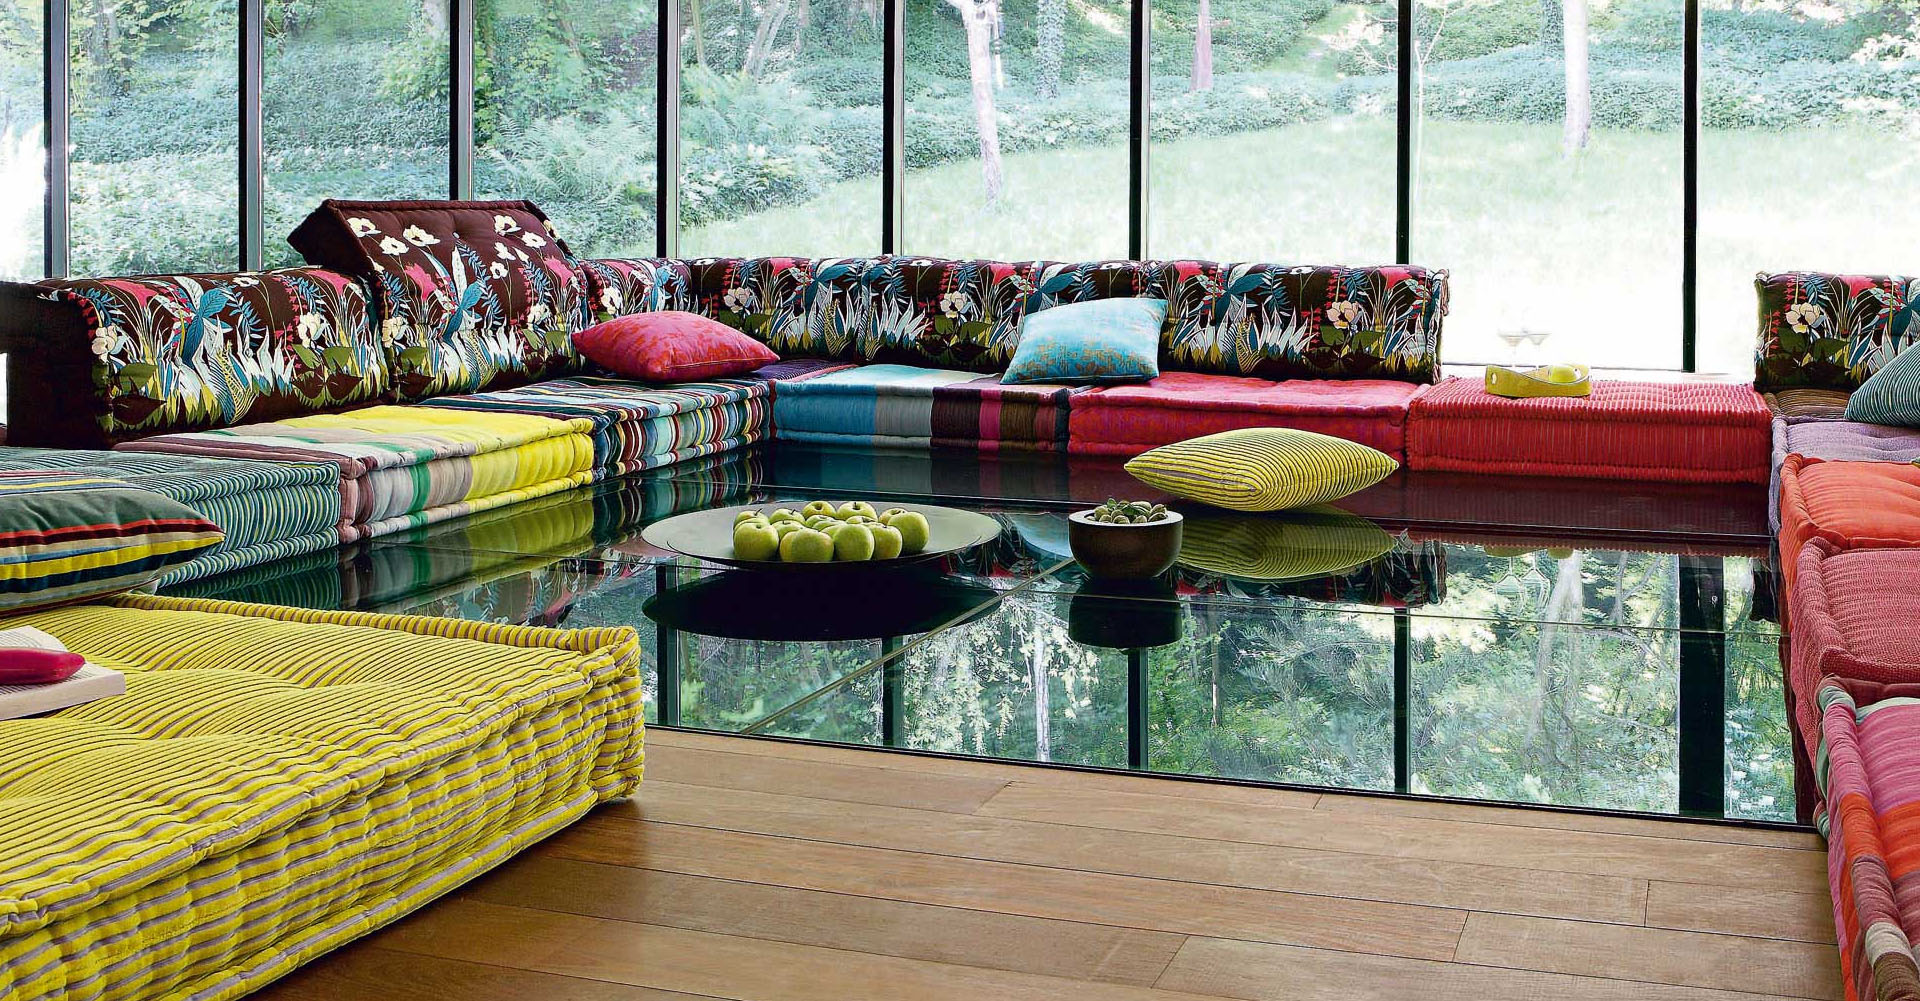 mahjong sofa roche bobois what style is chesterfield stylish and functional mah jong modular sofas